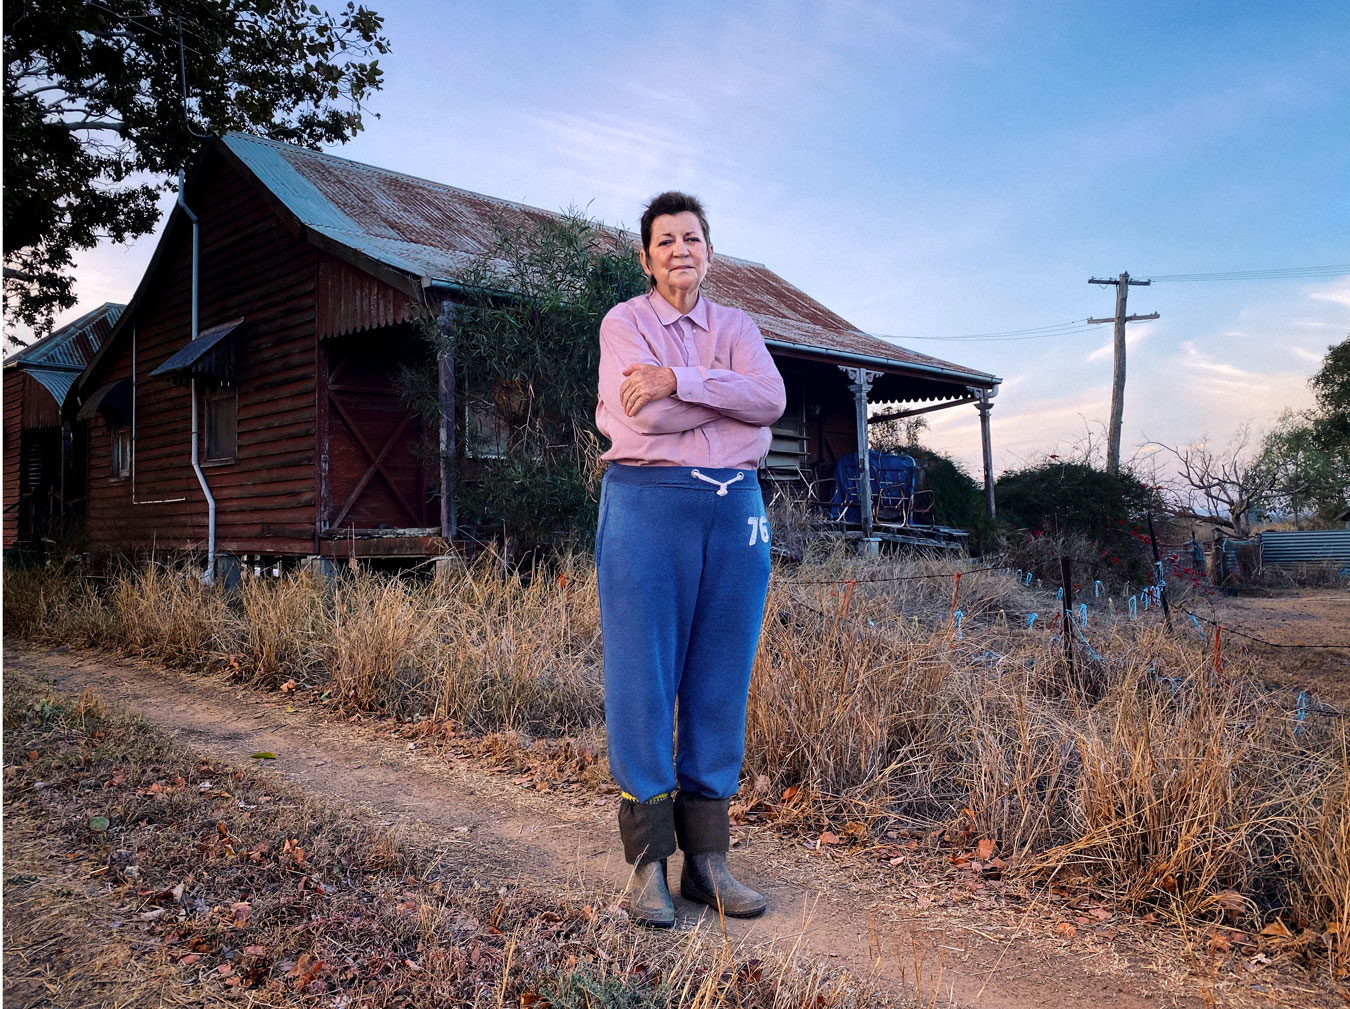 rural-woman-with-house-behind-her